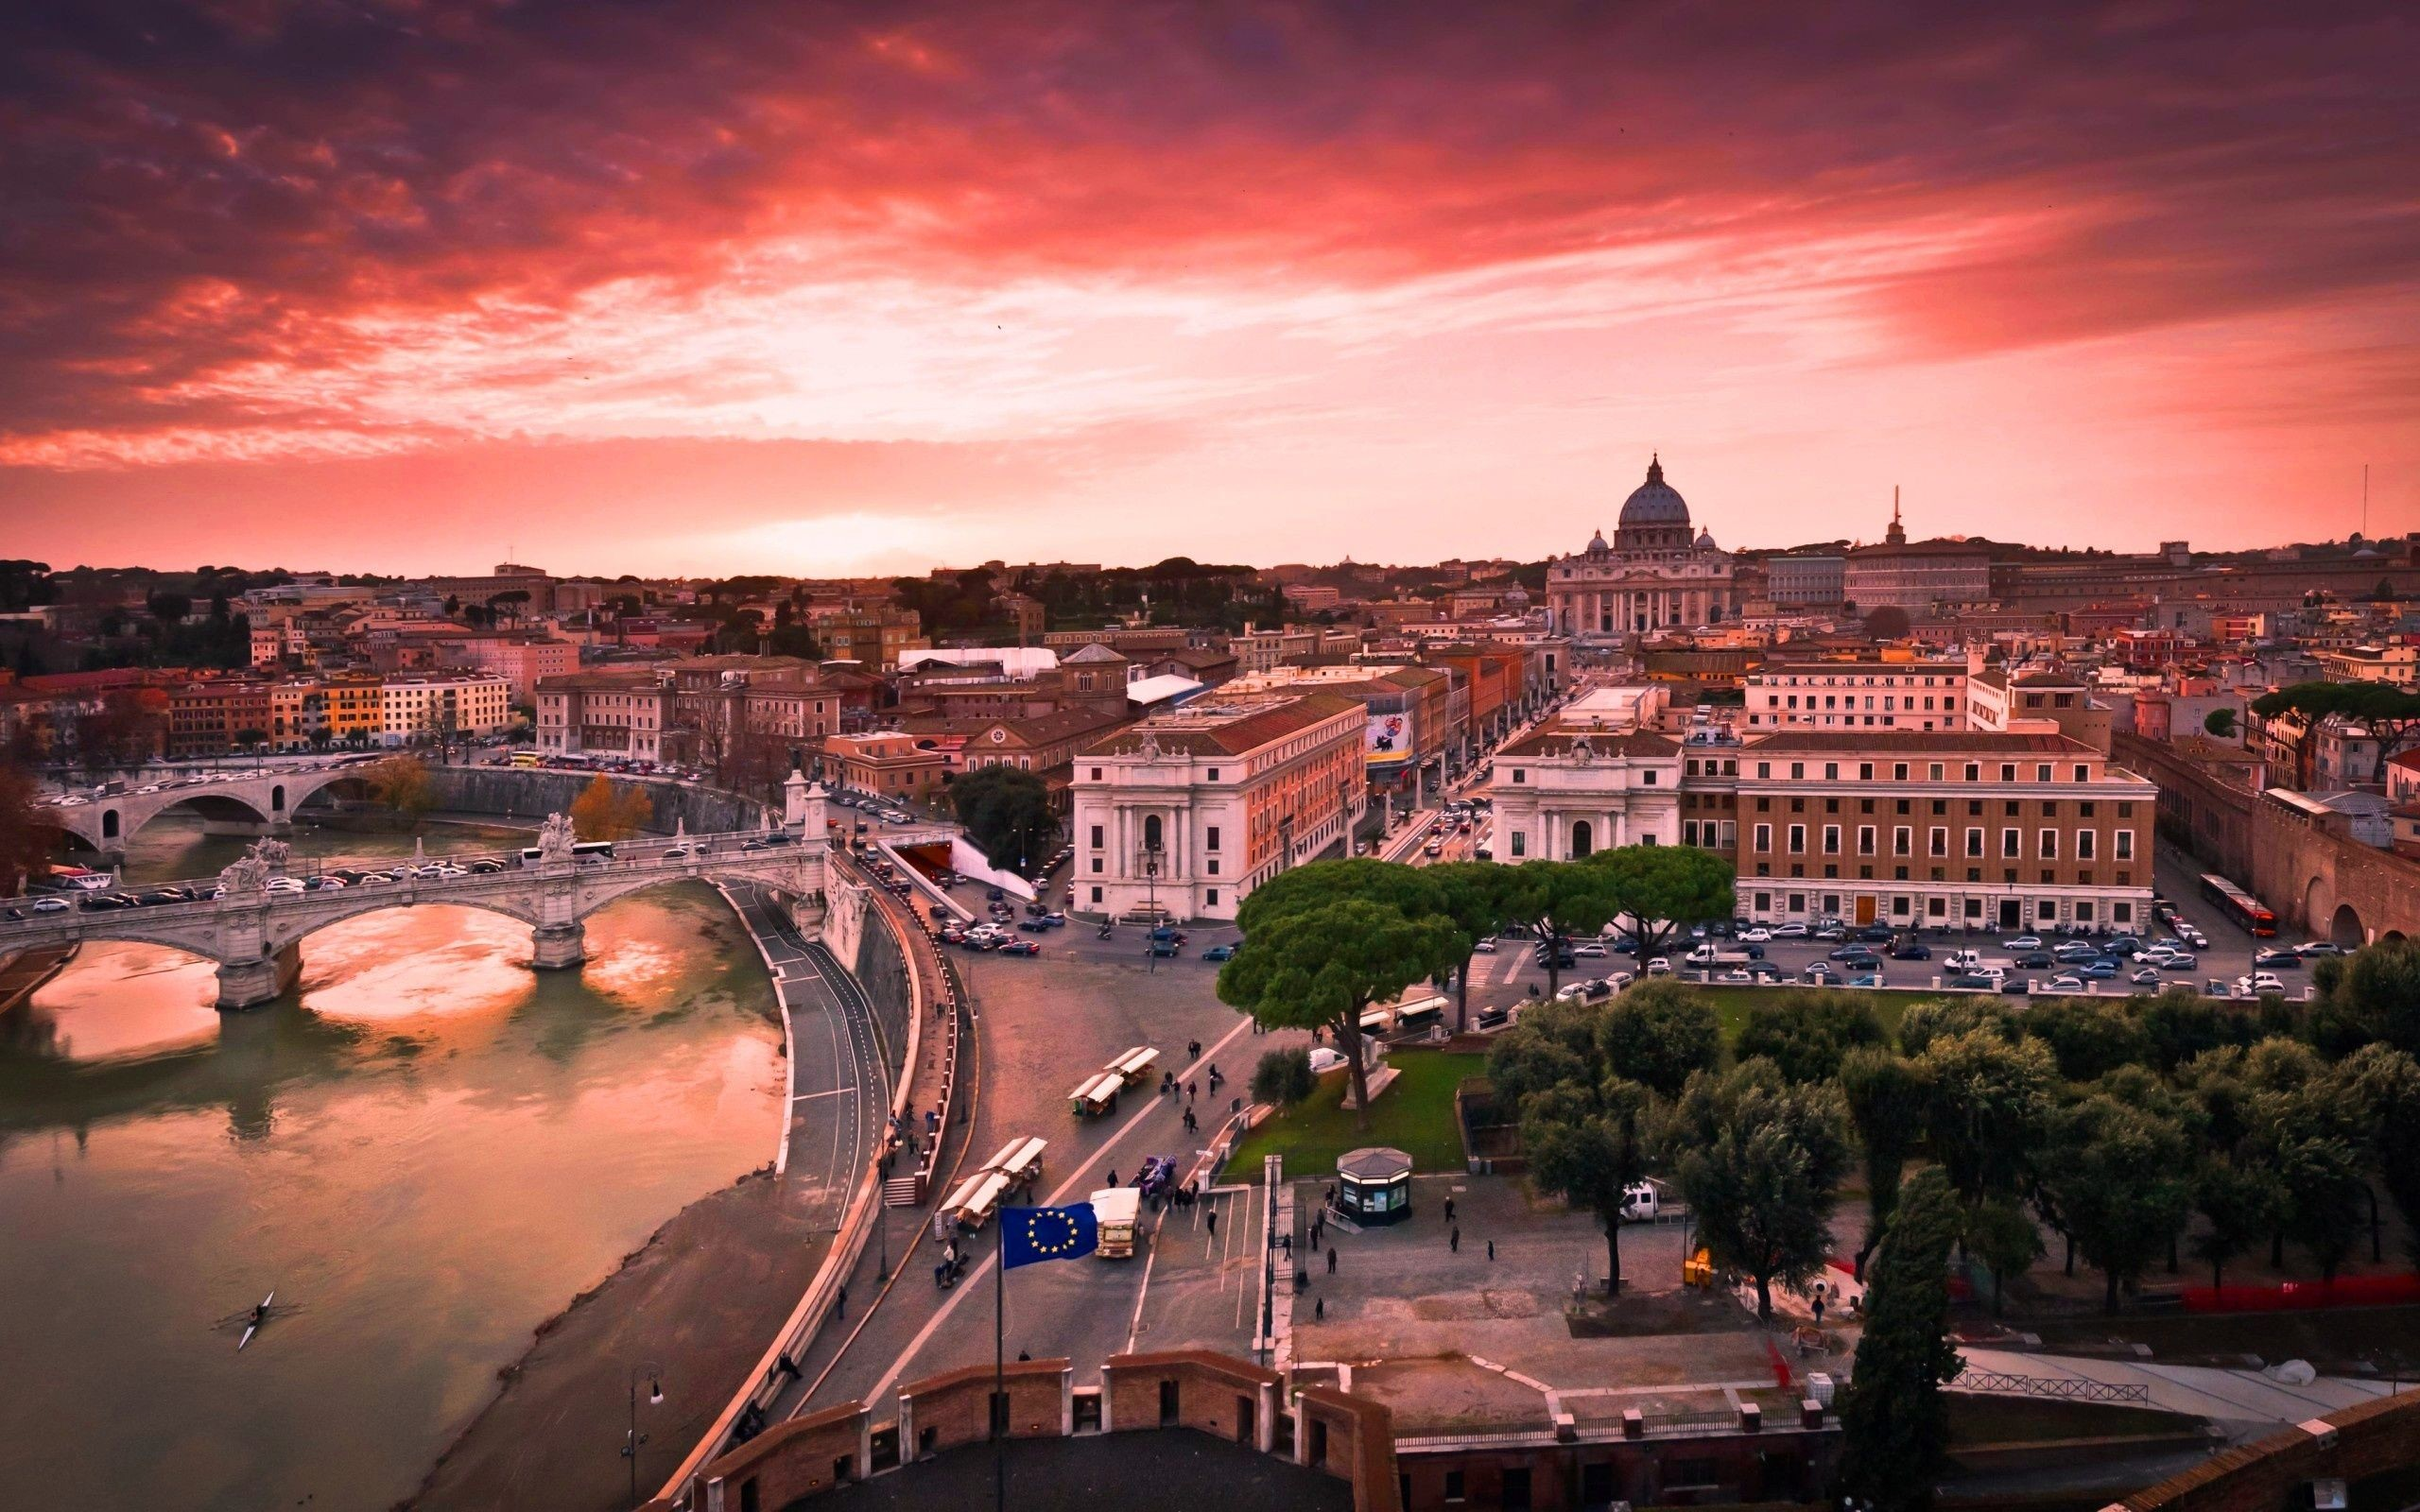 Res: 2560x1600, Vatican City Rome Italy Wallpapers -  - 1127036